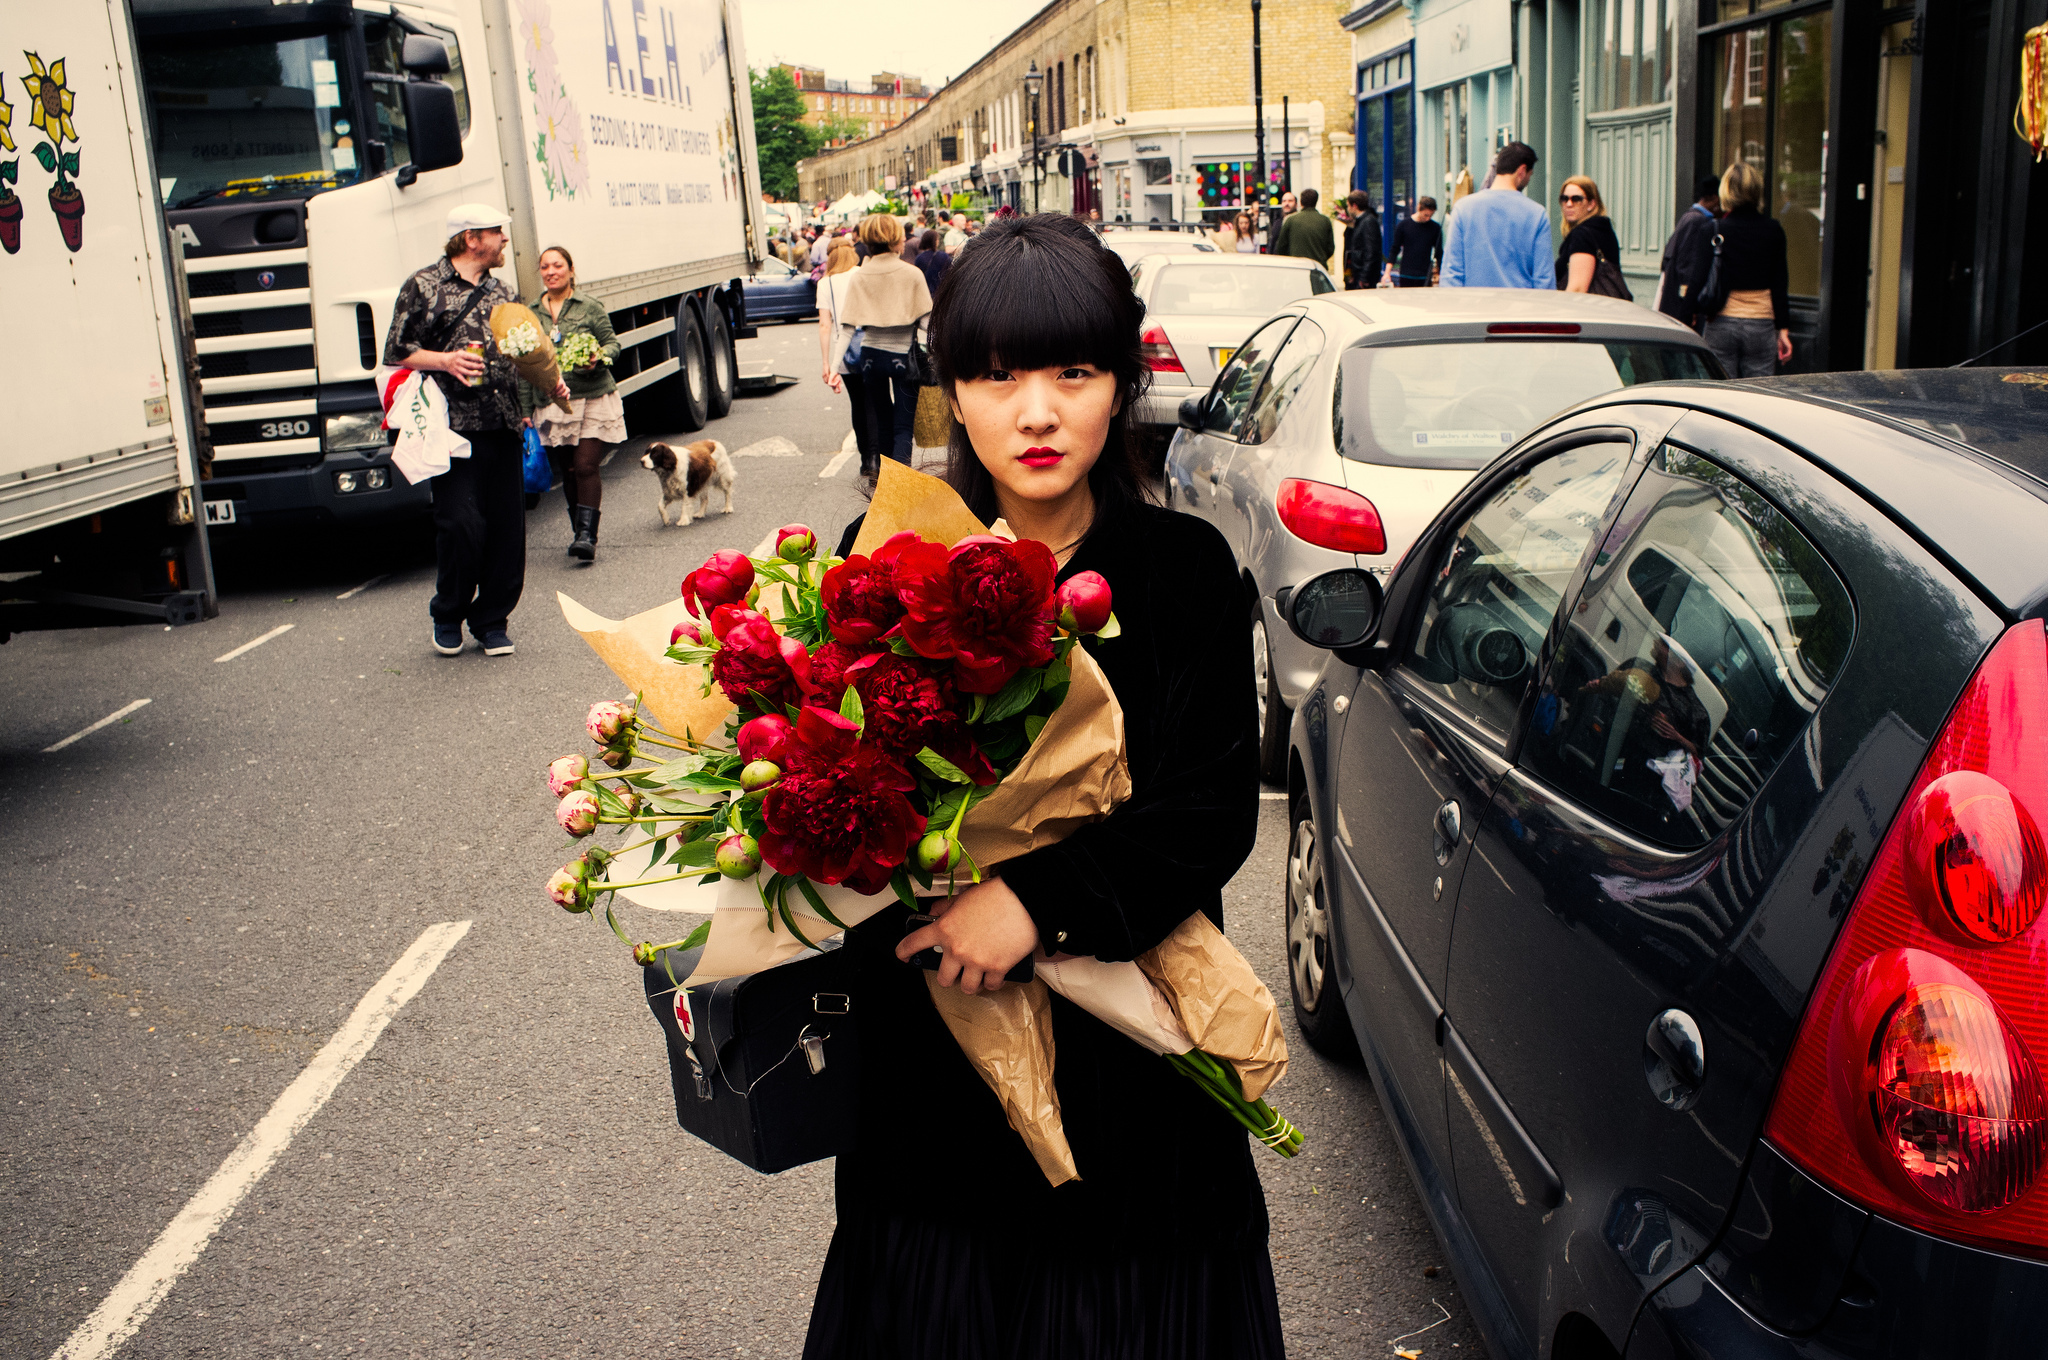 A woman with several bouquets of flowers is captured in this London street portrait.